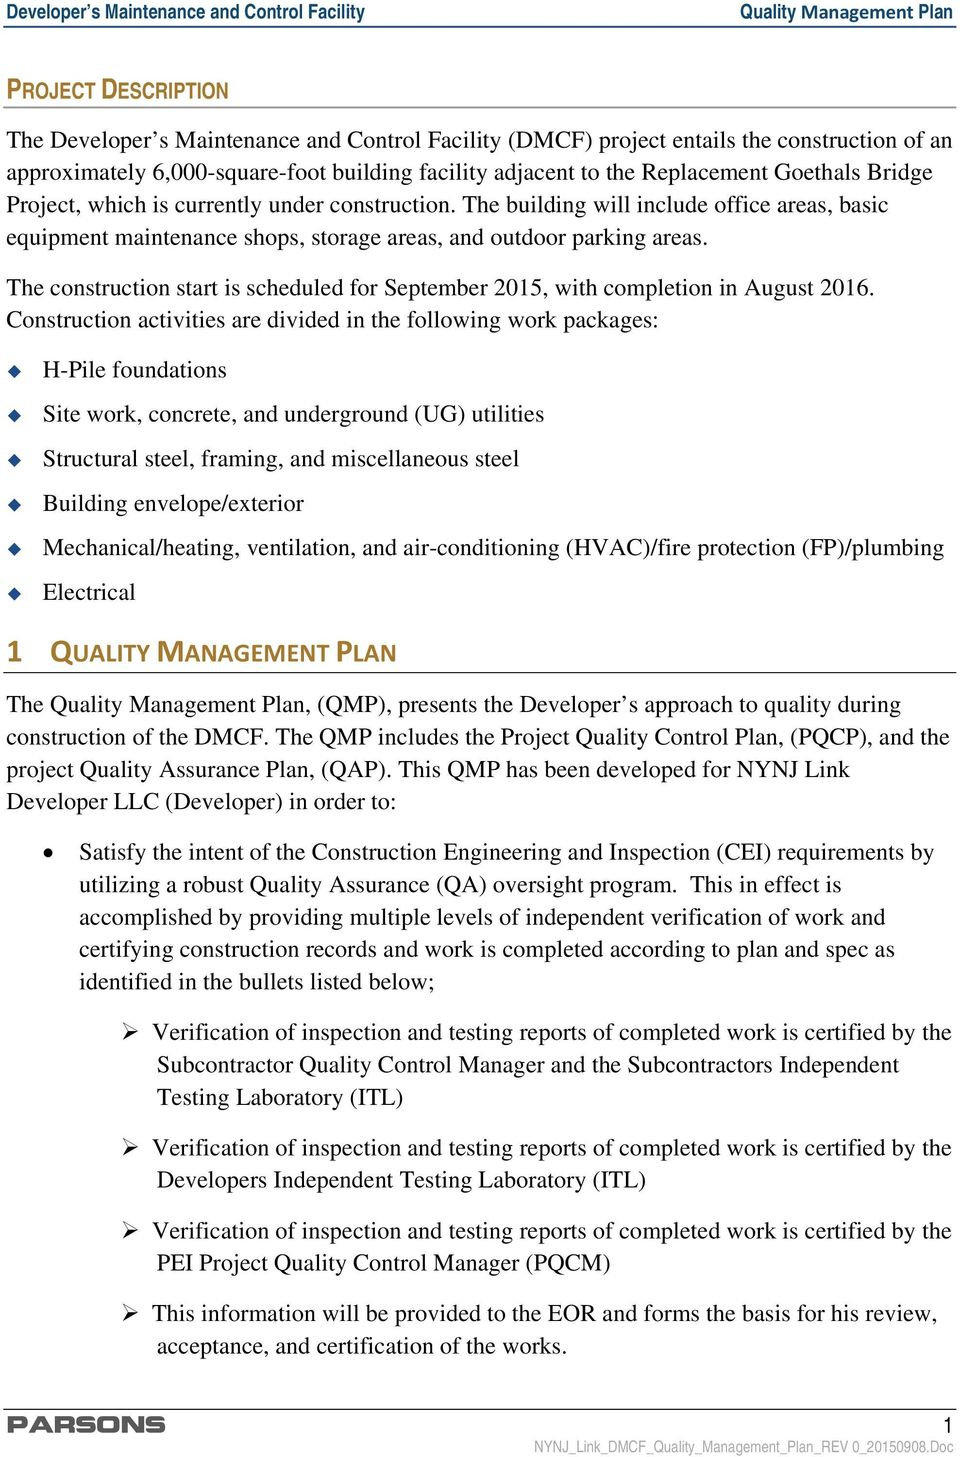 quality management plan - pdf free download  docplayer.net